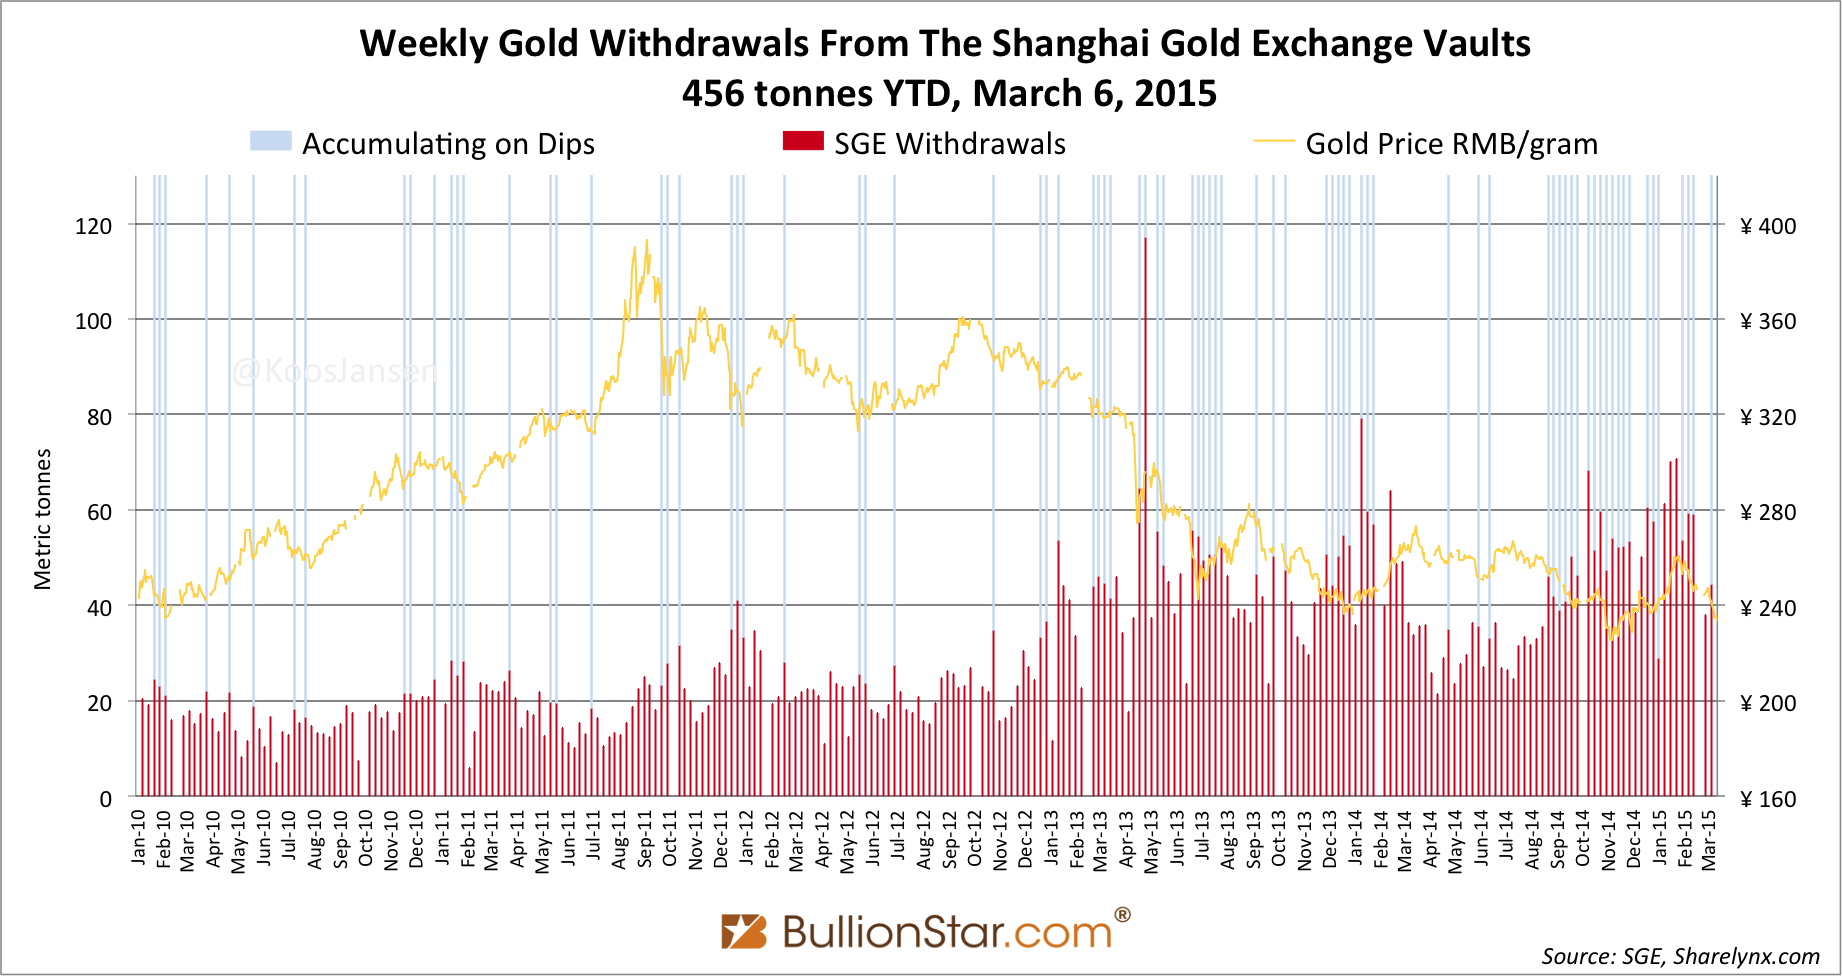 SGE Withdrawals 45t Week 9, YTD 456t